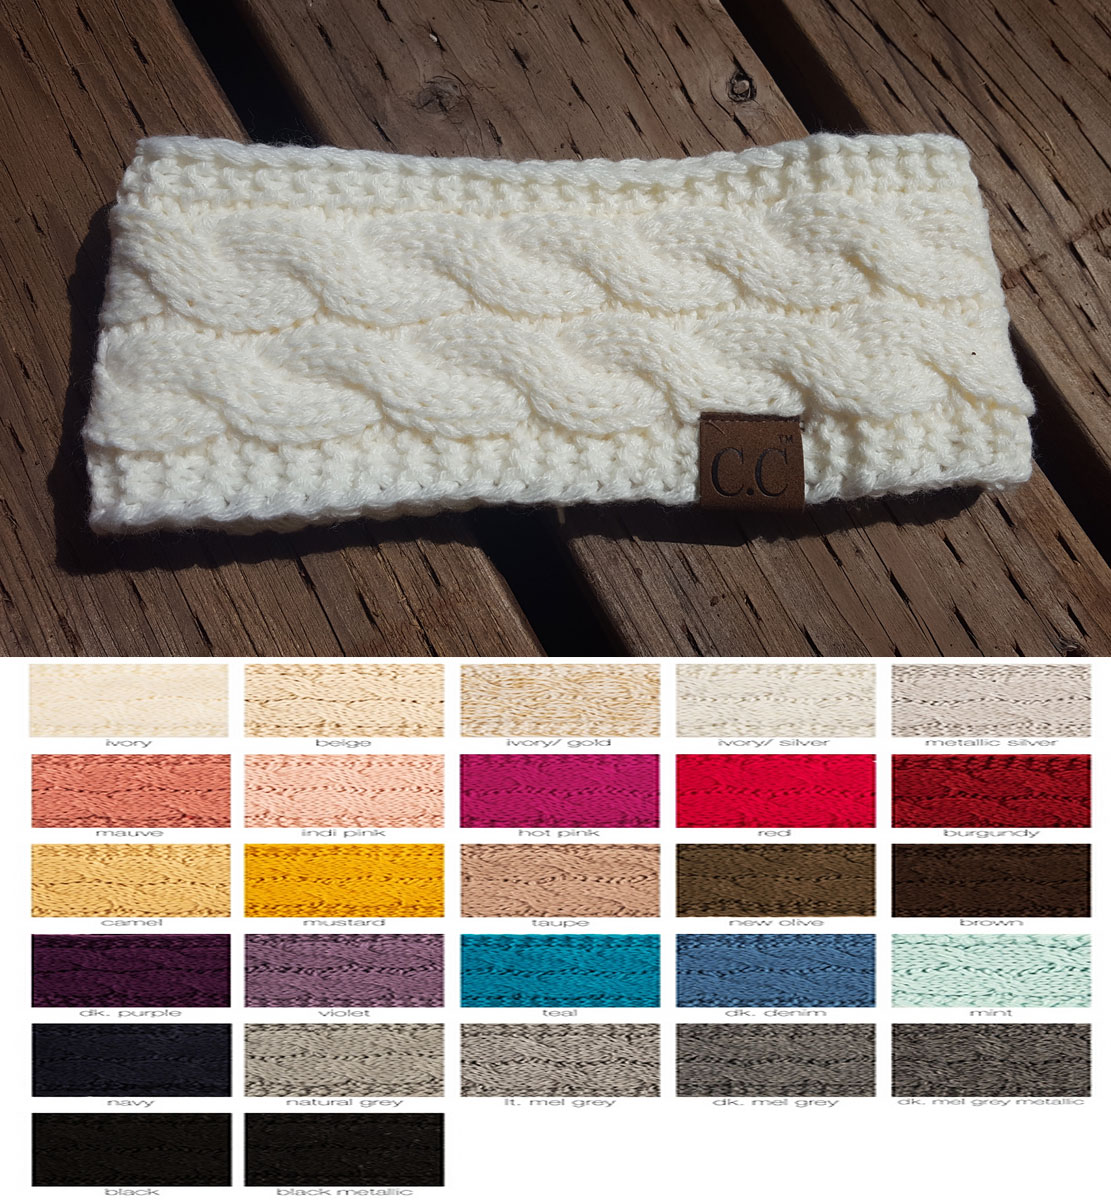 Cable Knit CC Brand Headband with Plush Lining 5b9f73559e0